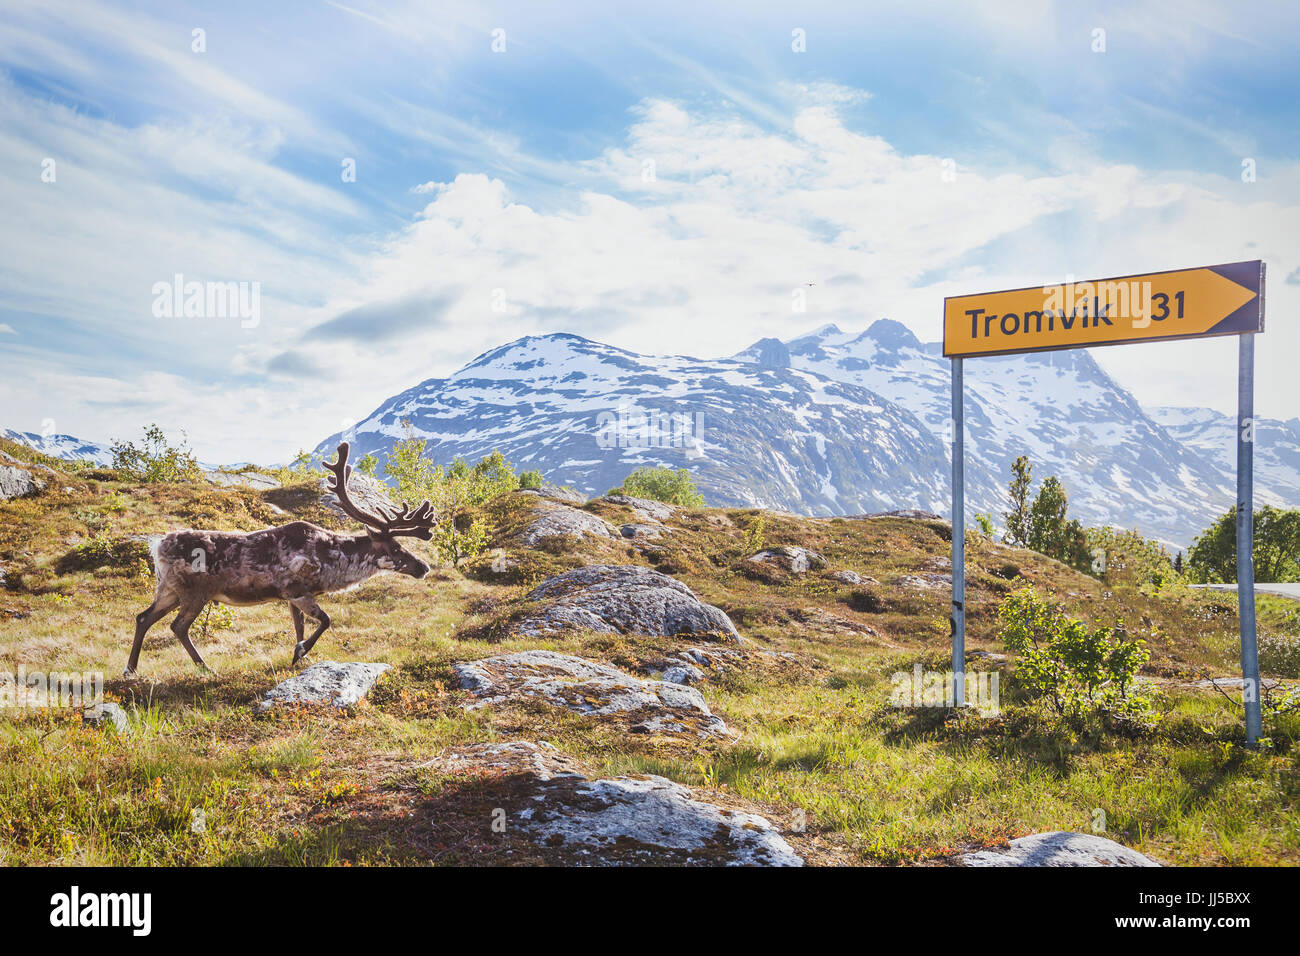 reindeer walking in urban area near road directional sign to city Tromvik near Tromso - Stock Image